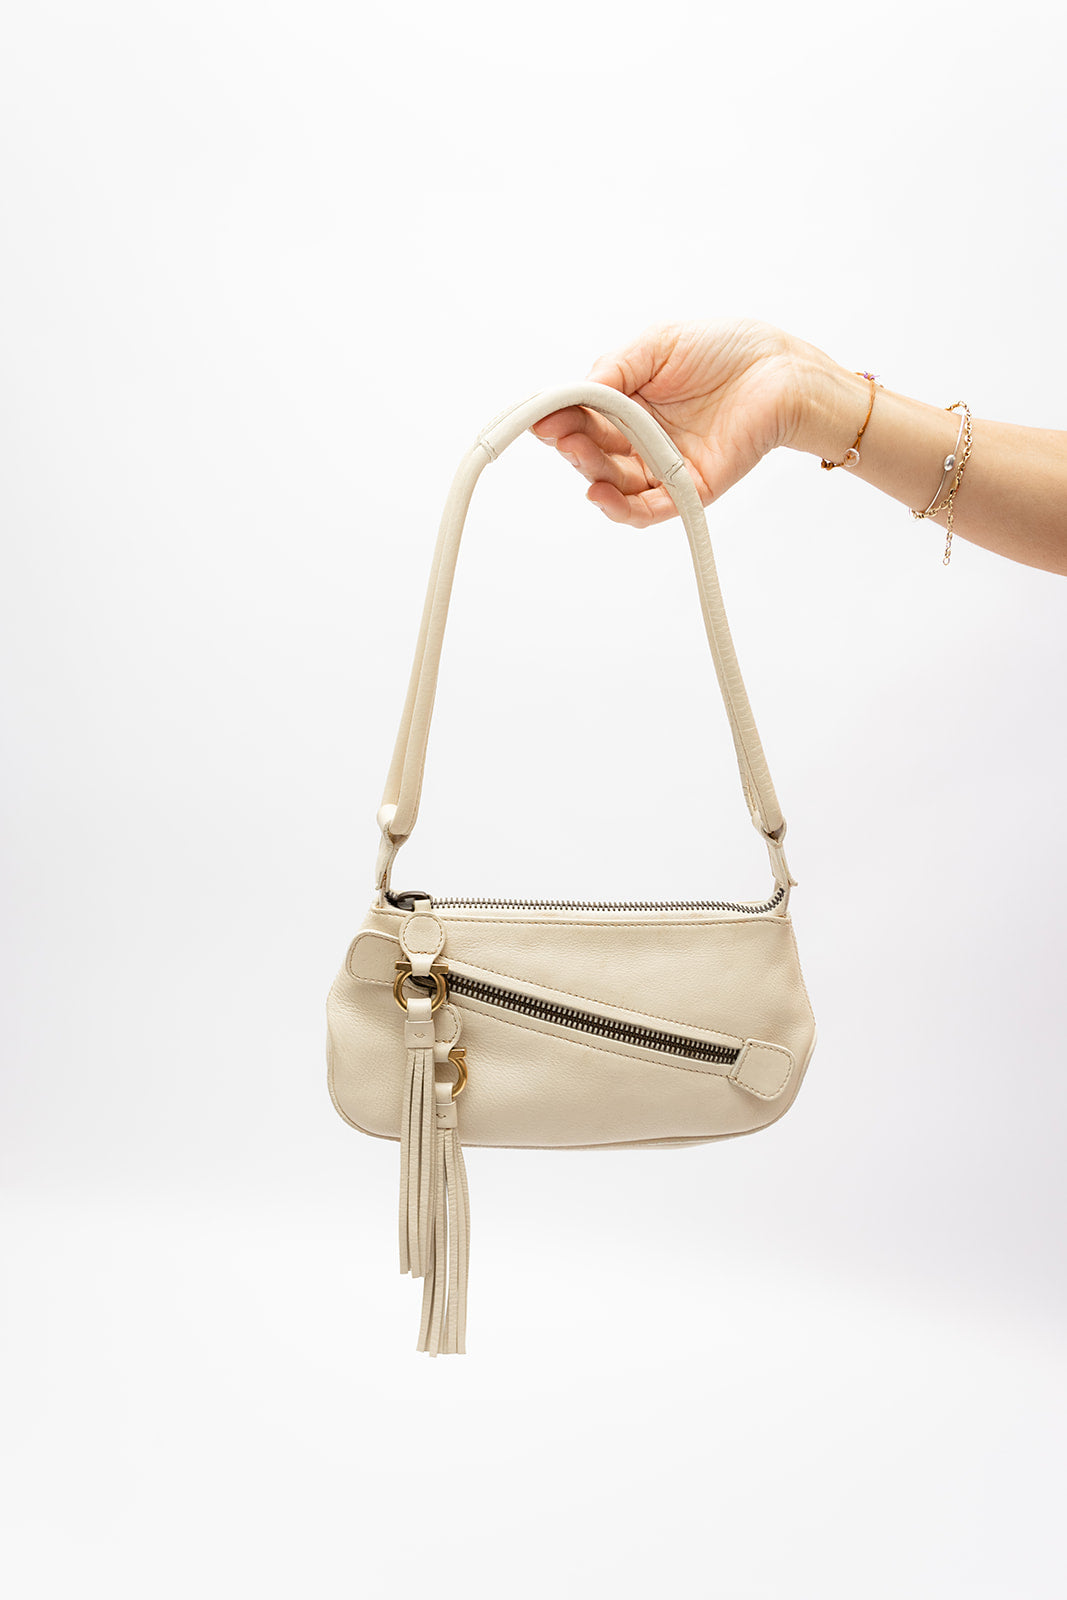 Ferragamo Cream Leather Bag